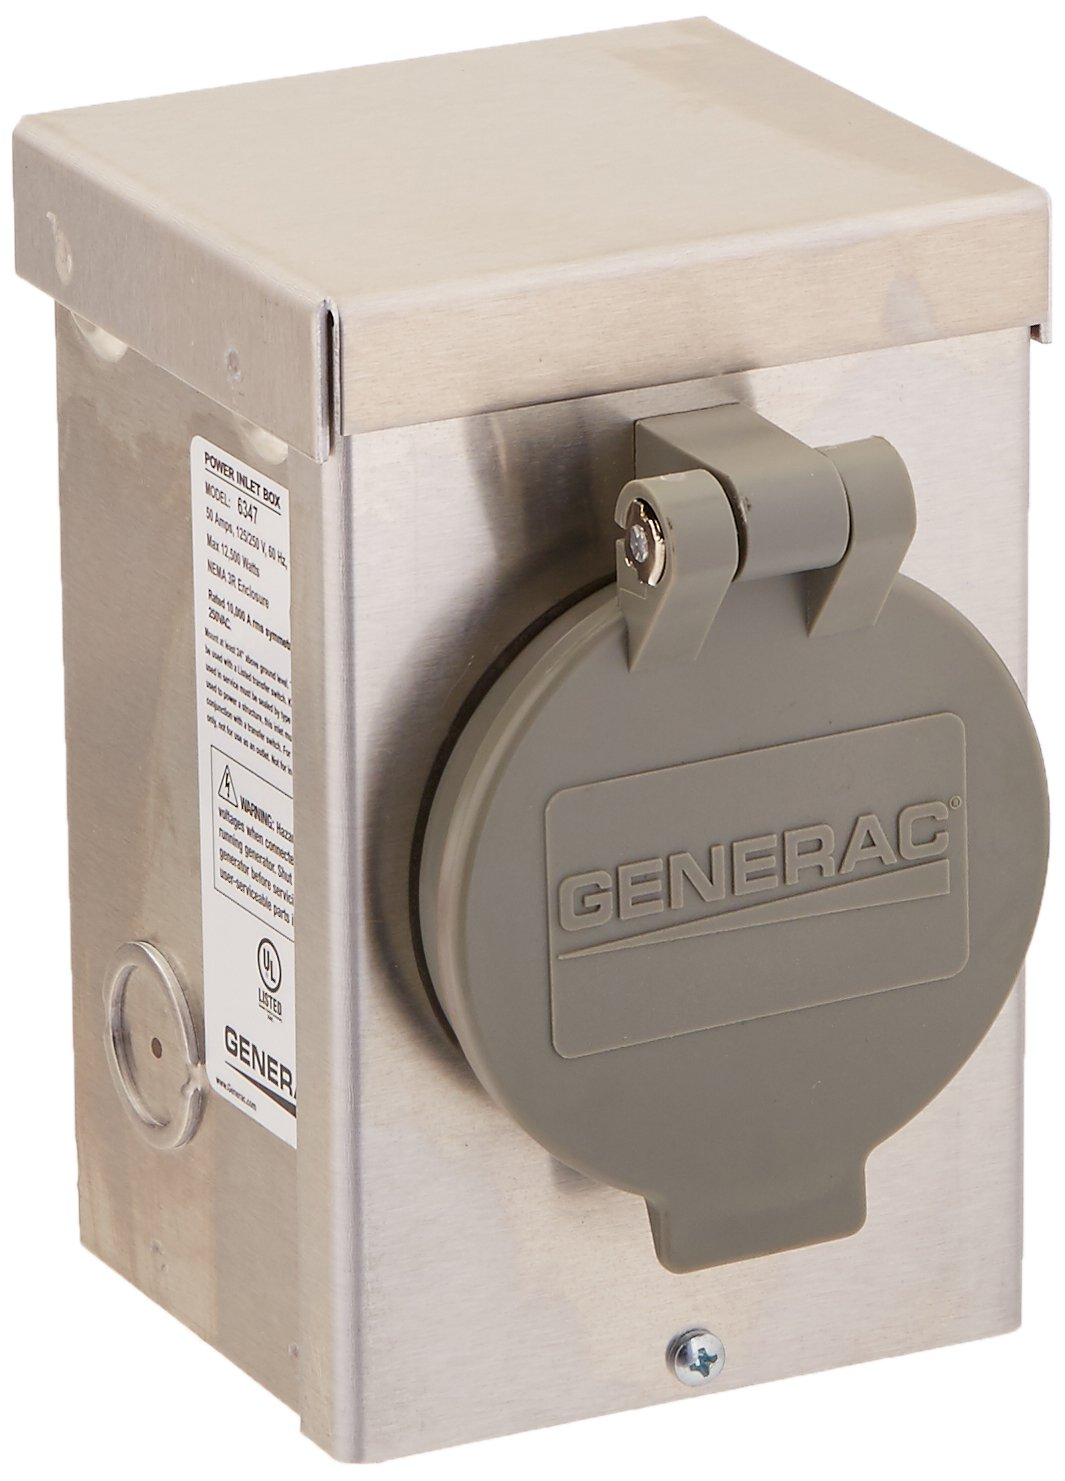 Generac 6339 20-Amp 125//250V Raintight Power Inlet Box with